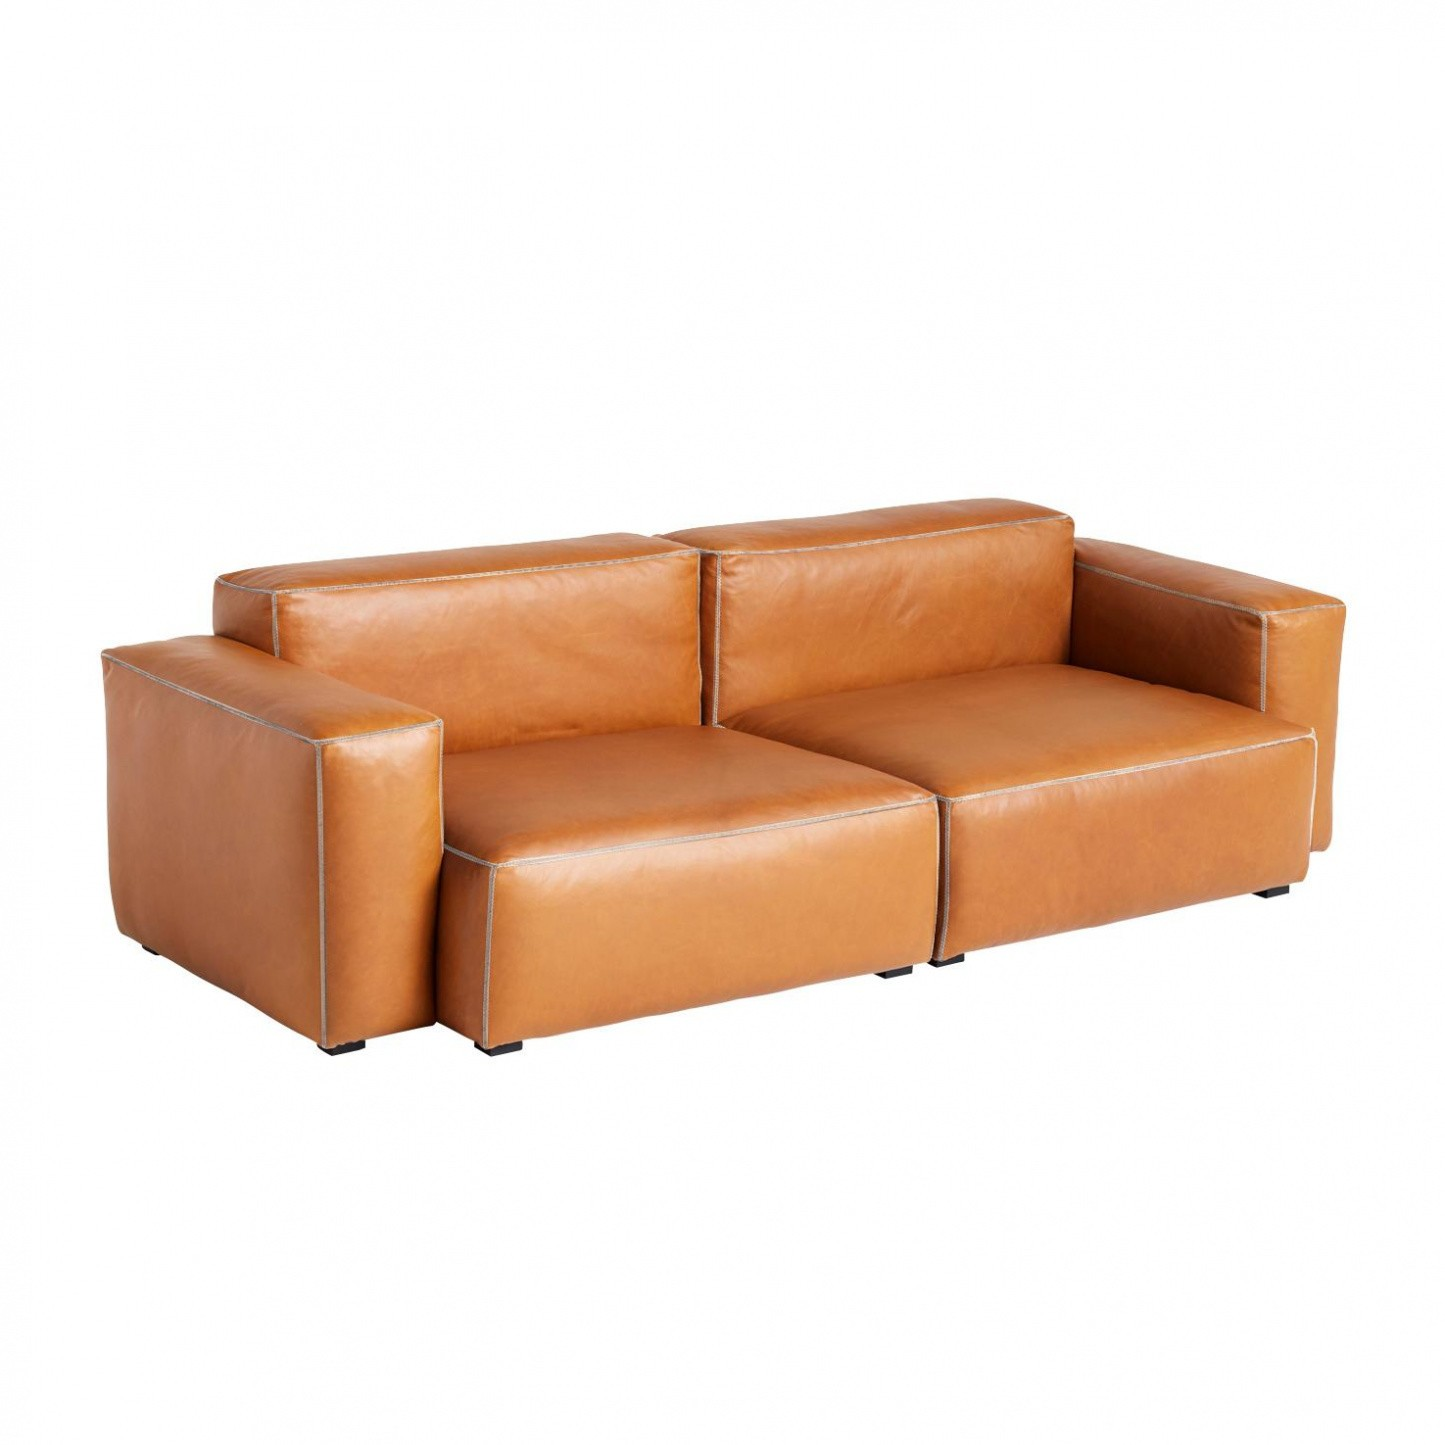 Hay Mags Soft 2 5 Seater Sofa Low Armrest Leather